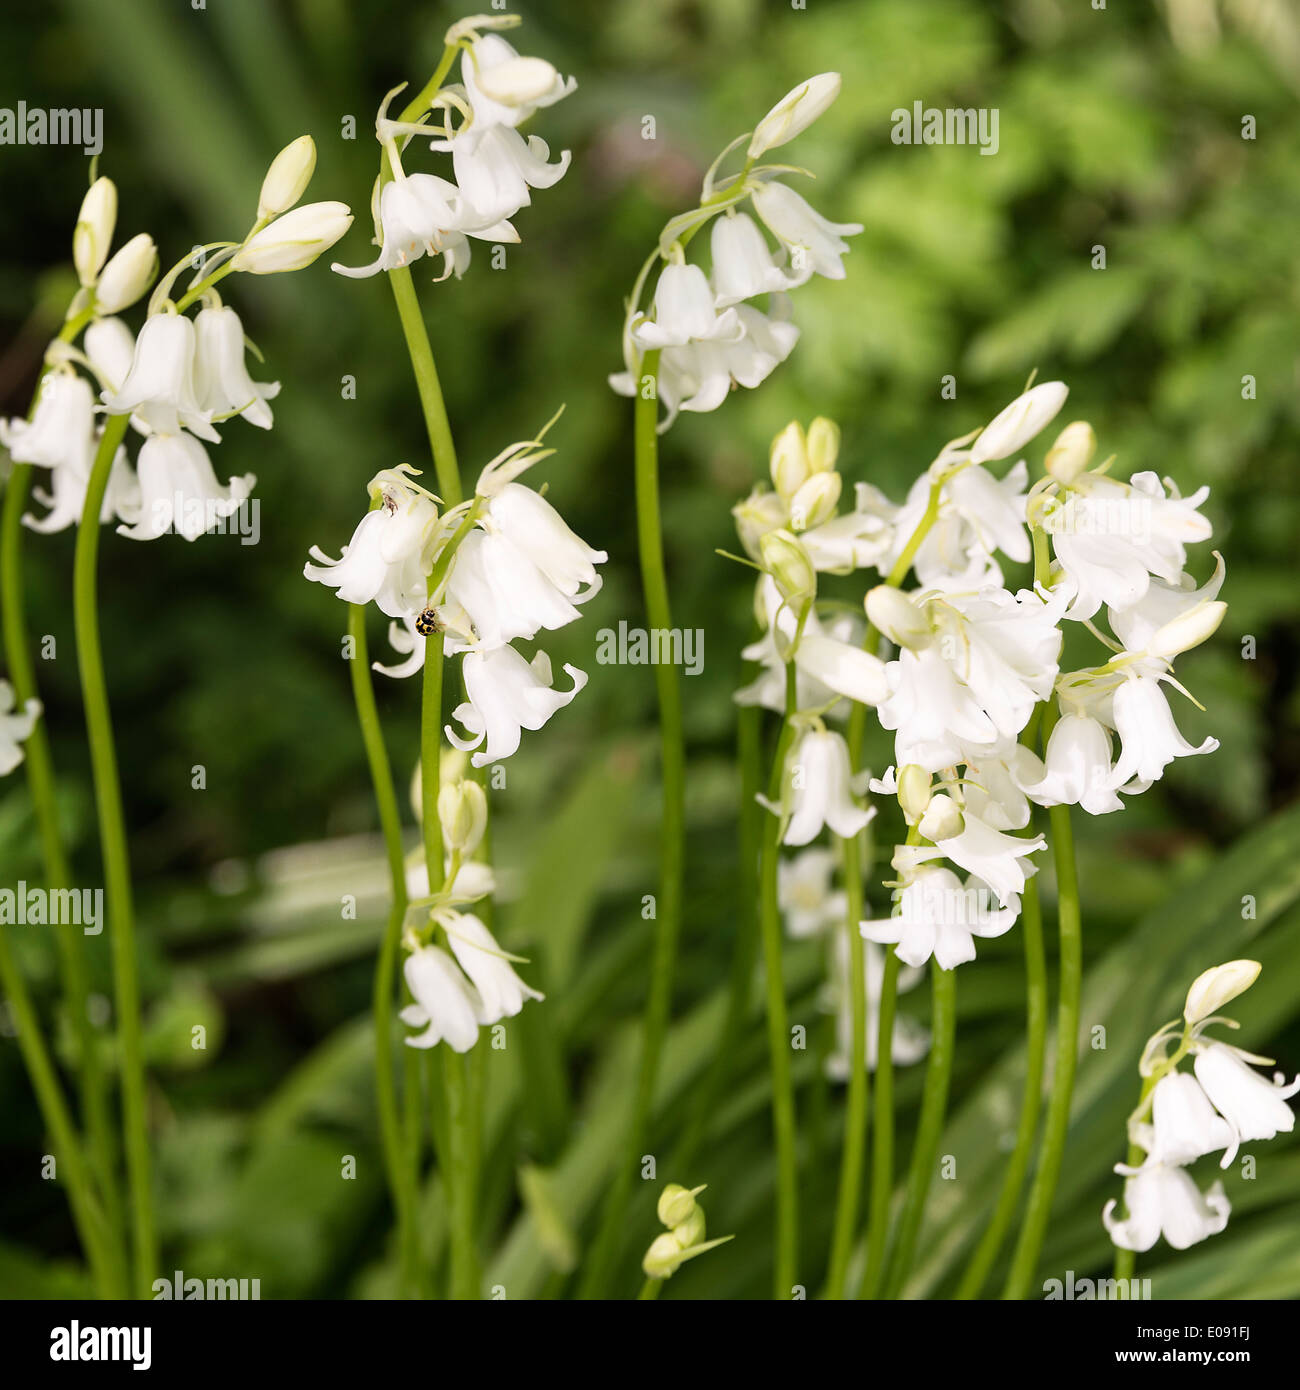 White bluebell stock photos white bluebell stock images alamy white bluebell hispanica flowers in spring bloom in an oxfordshire garden shipton under wychwood england united mightylinksfo